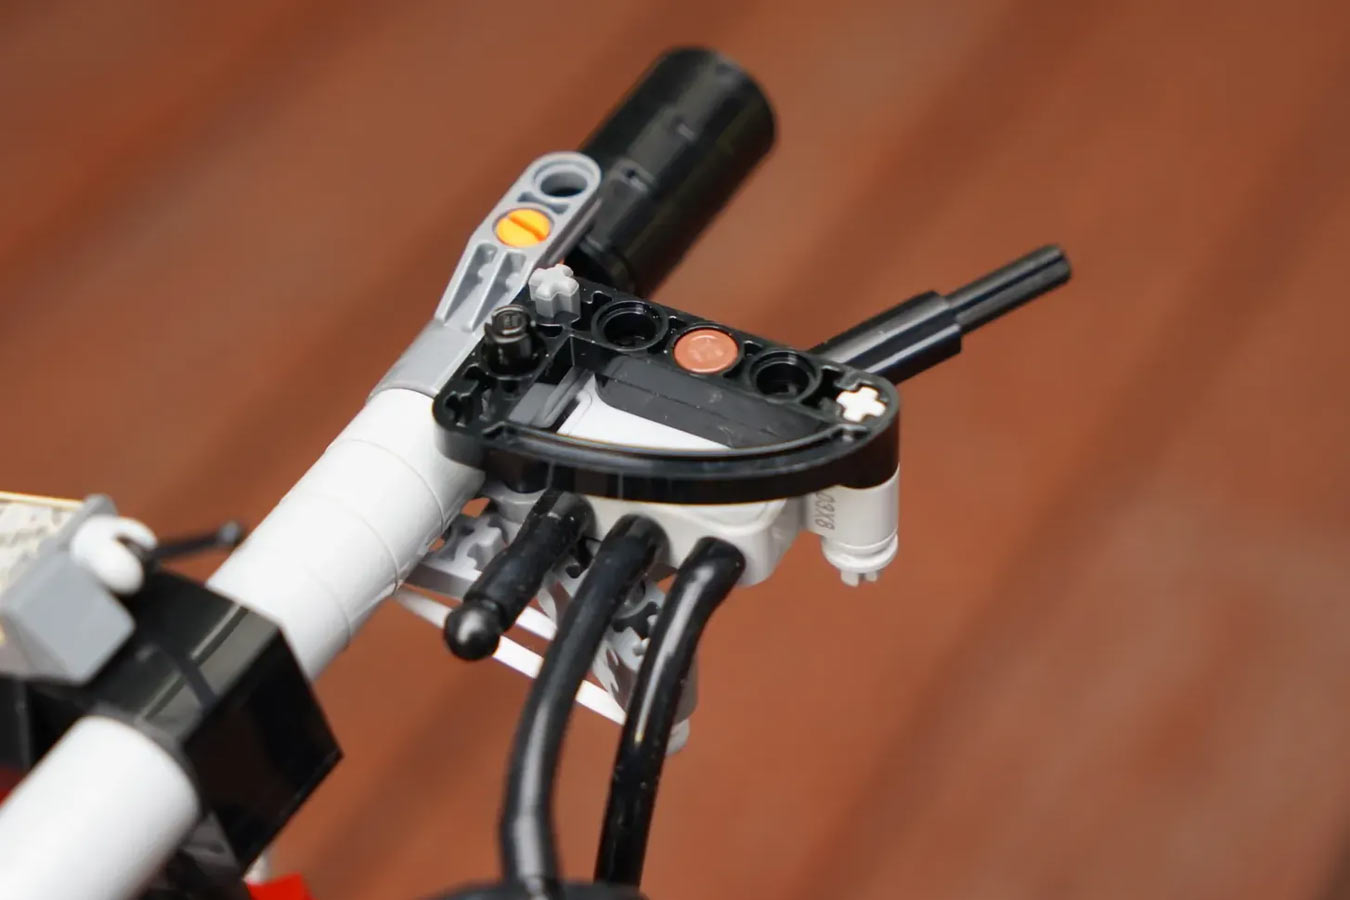 working pneumatic bicycle brakes made from lego bricks